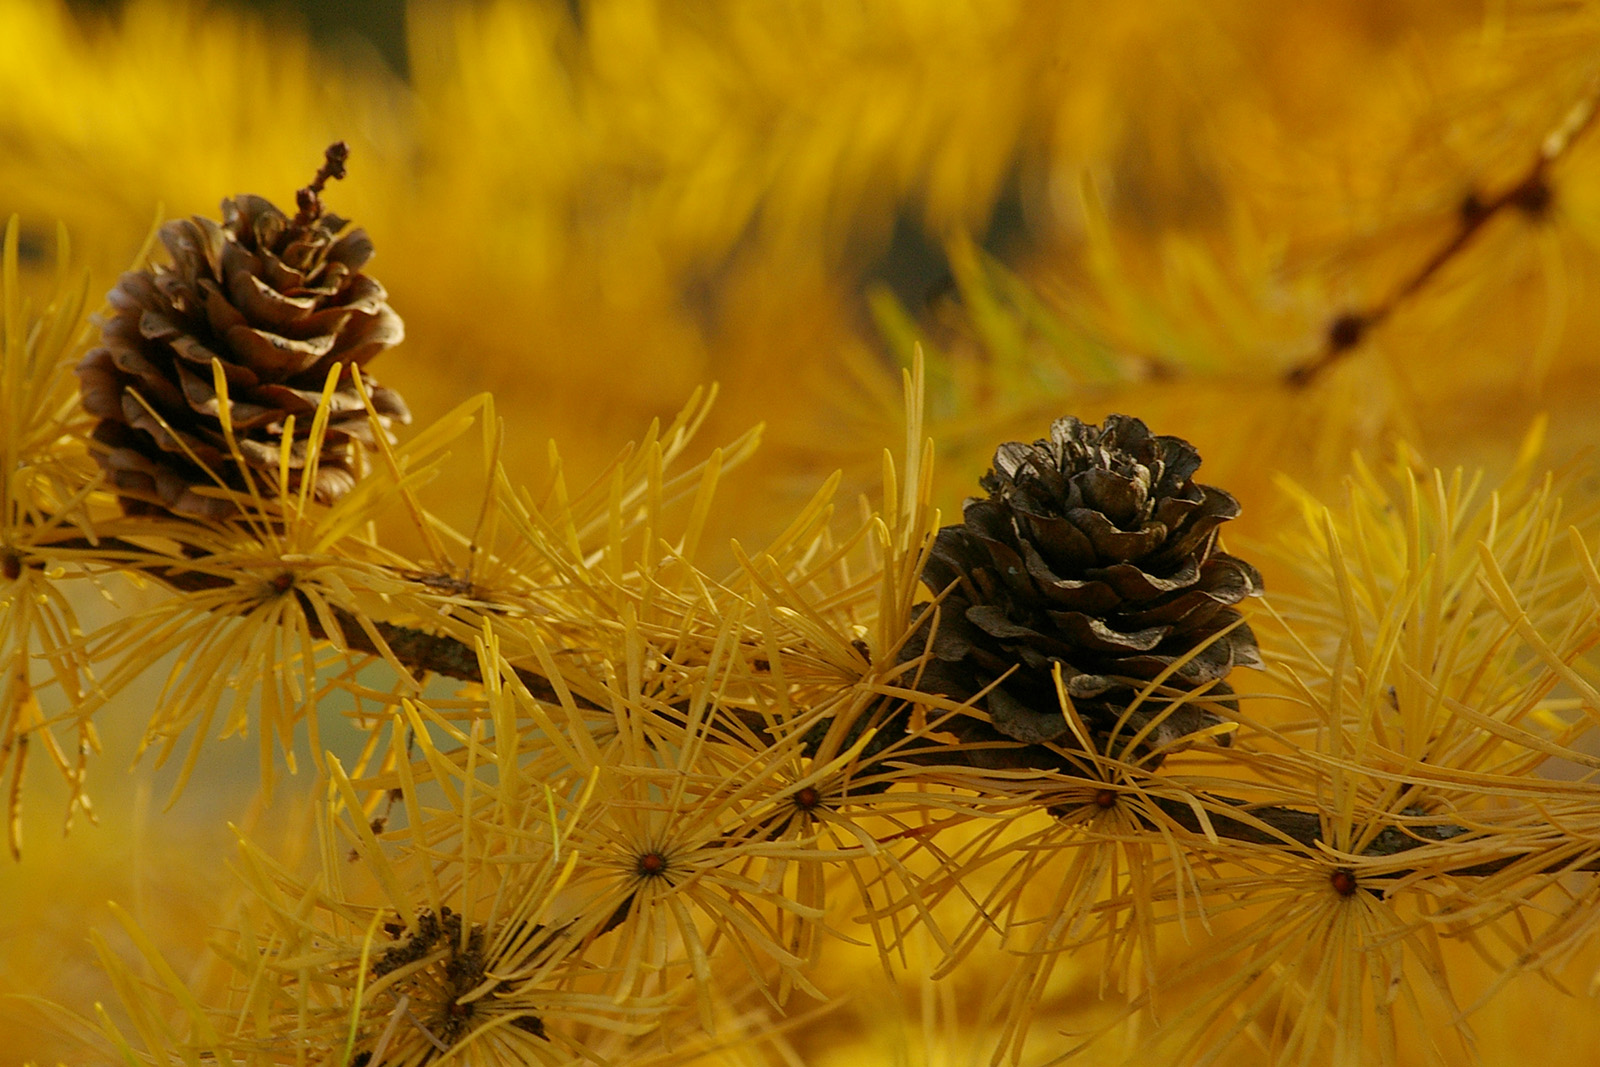 Late autumn cones of Larix decidua